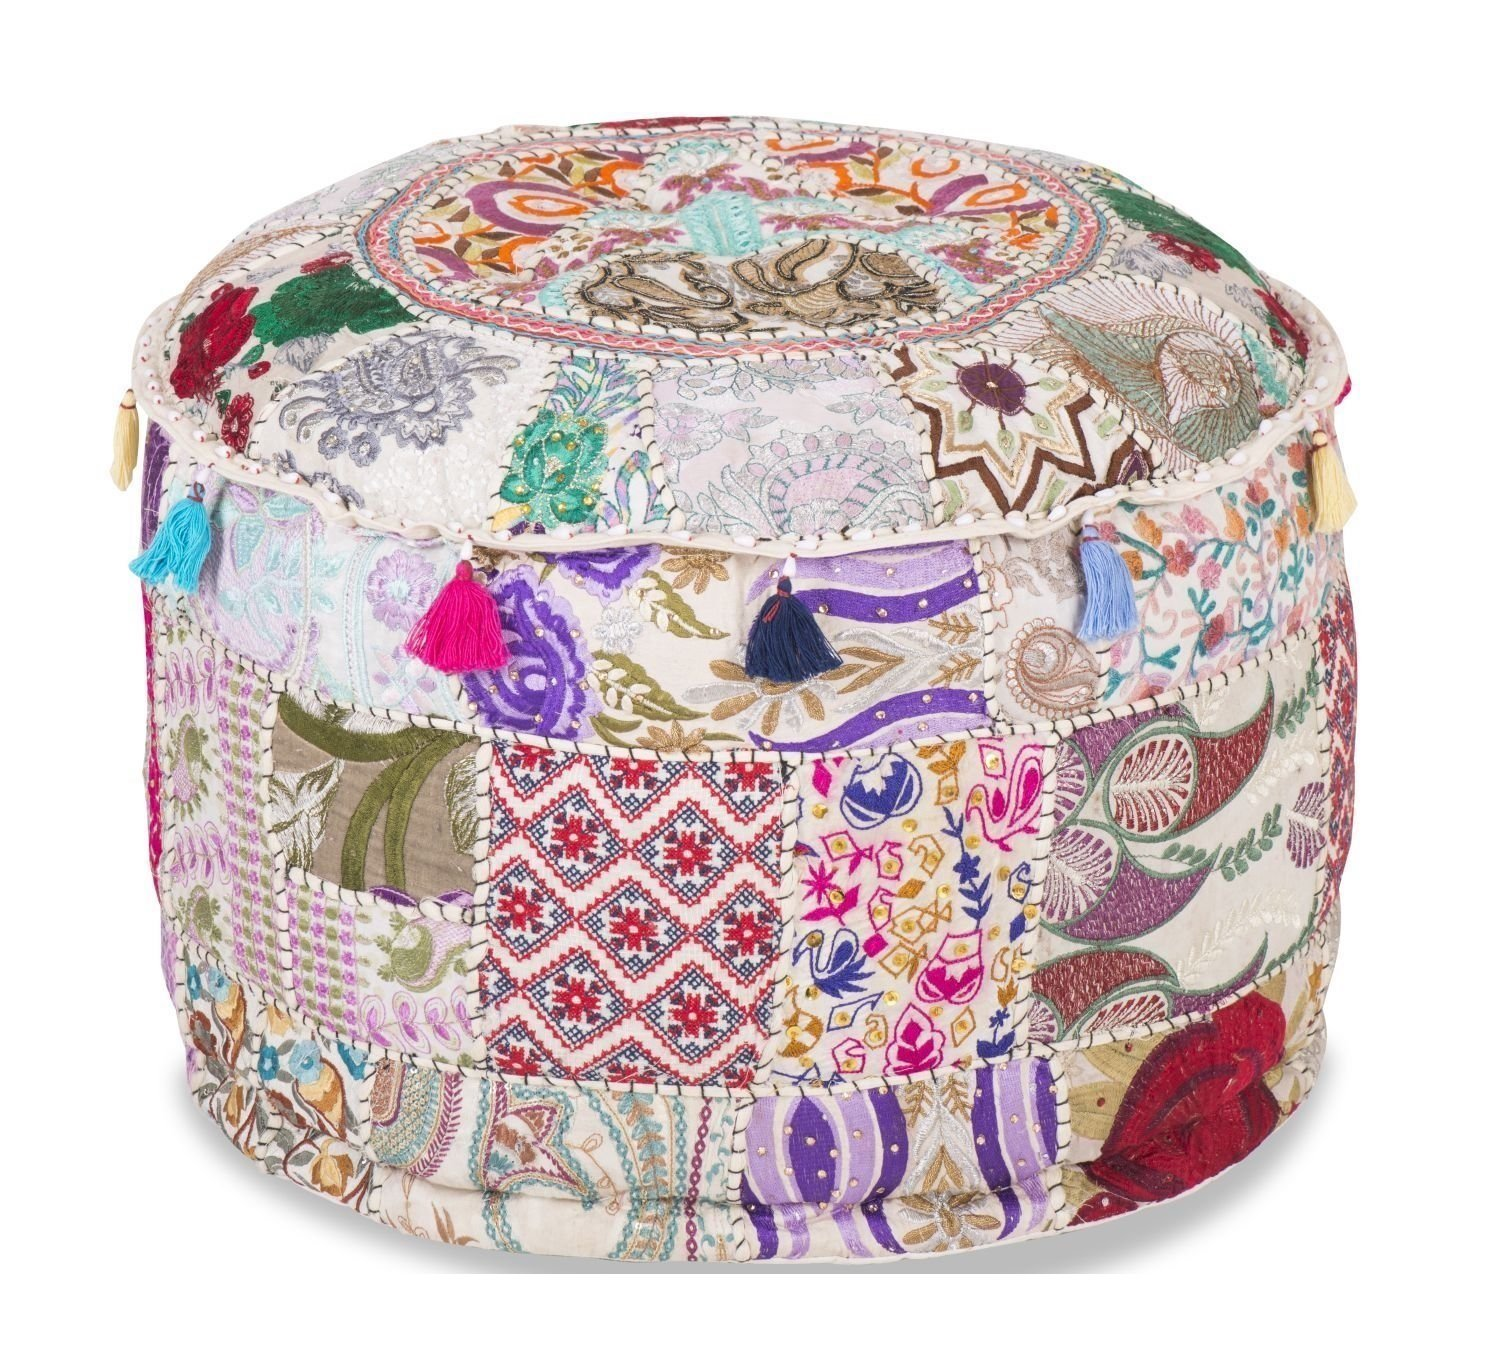 Indian Living Room Pouf, Foot Stool, Round Ottoman Cover Pouf,Traditional Handmade Decorative Patchwork Ottoman Cover,Indian Home Decor Cotton Cushion Ottoman Cover 18 x 15'' inches (White)